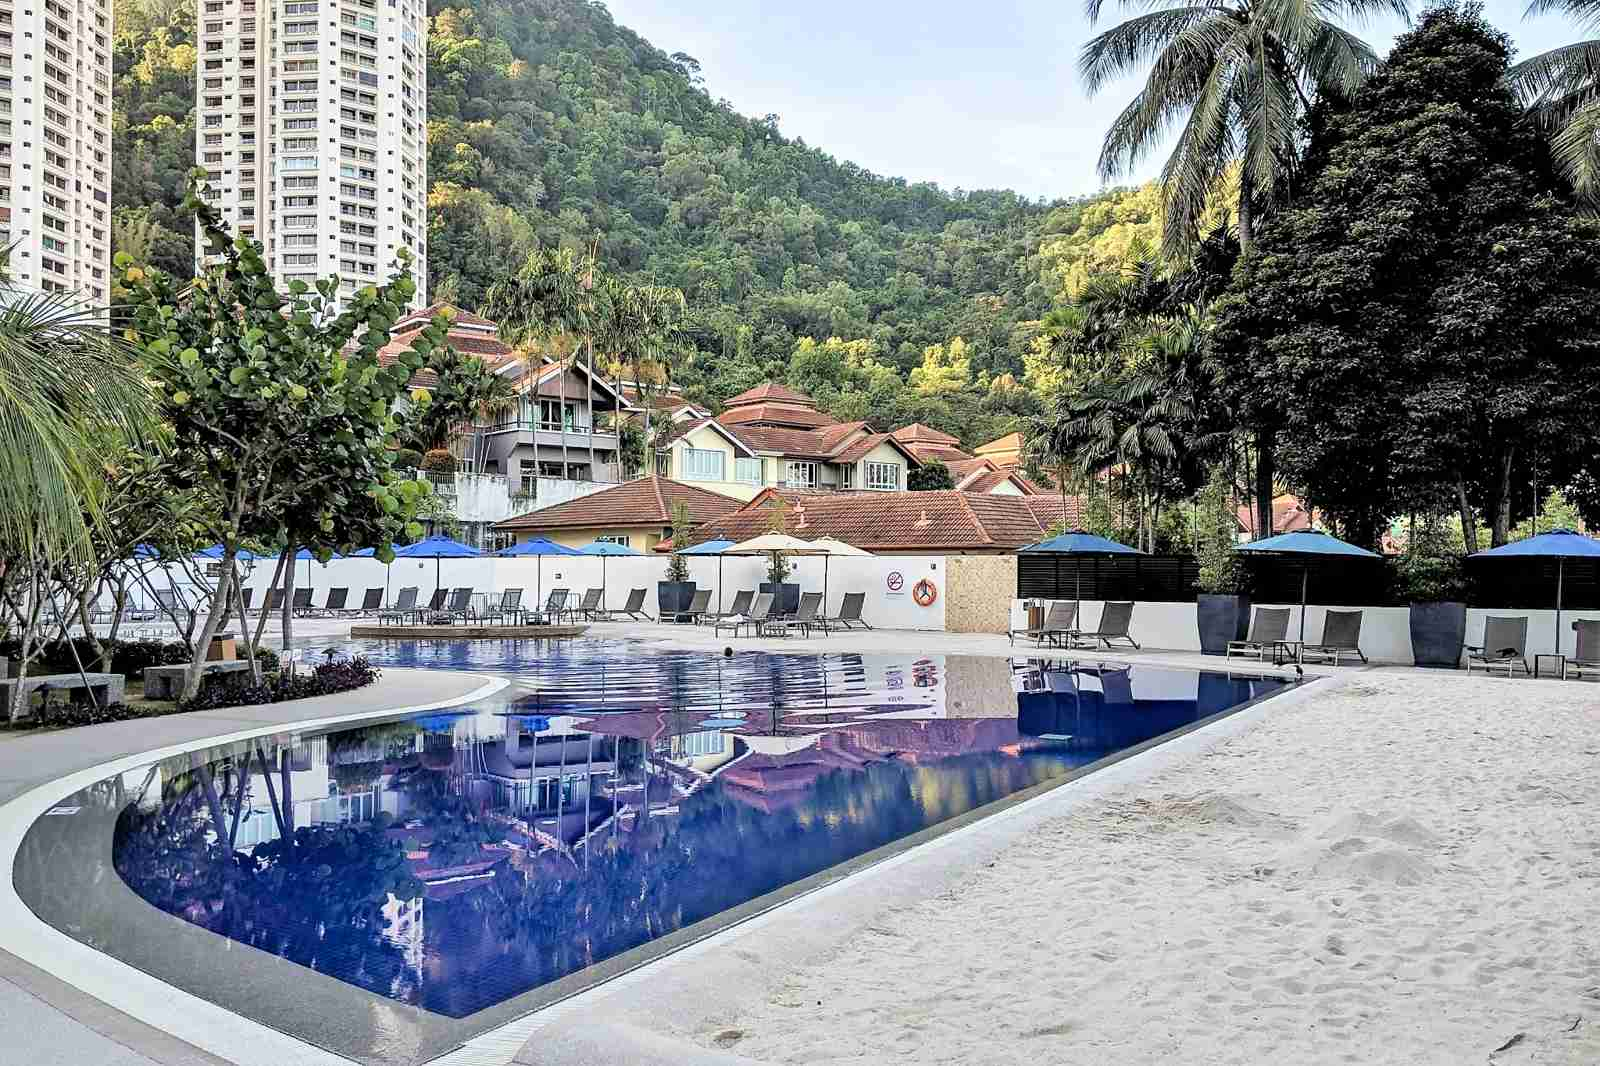 The DoubleTree Resort by Hilton Penang. (Photo by Katie Genter/The Points Guy)